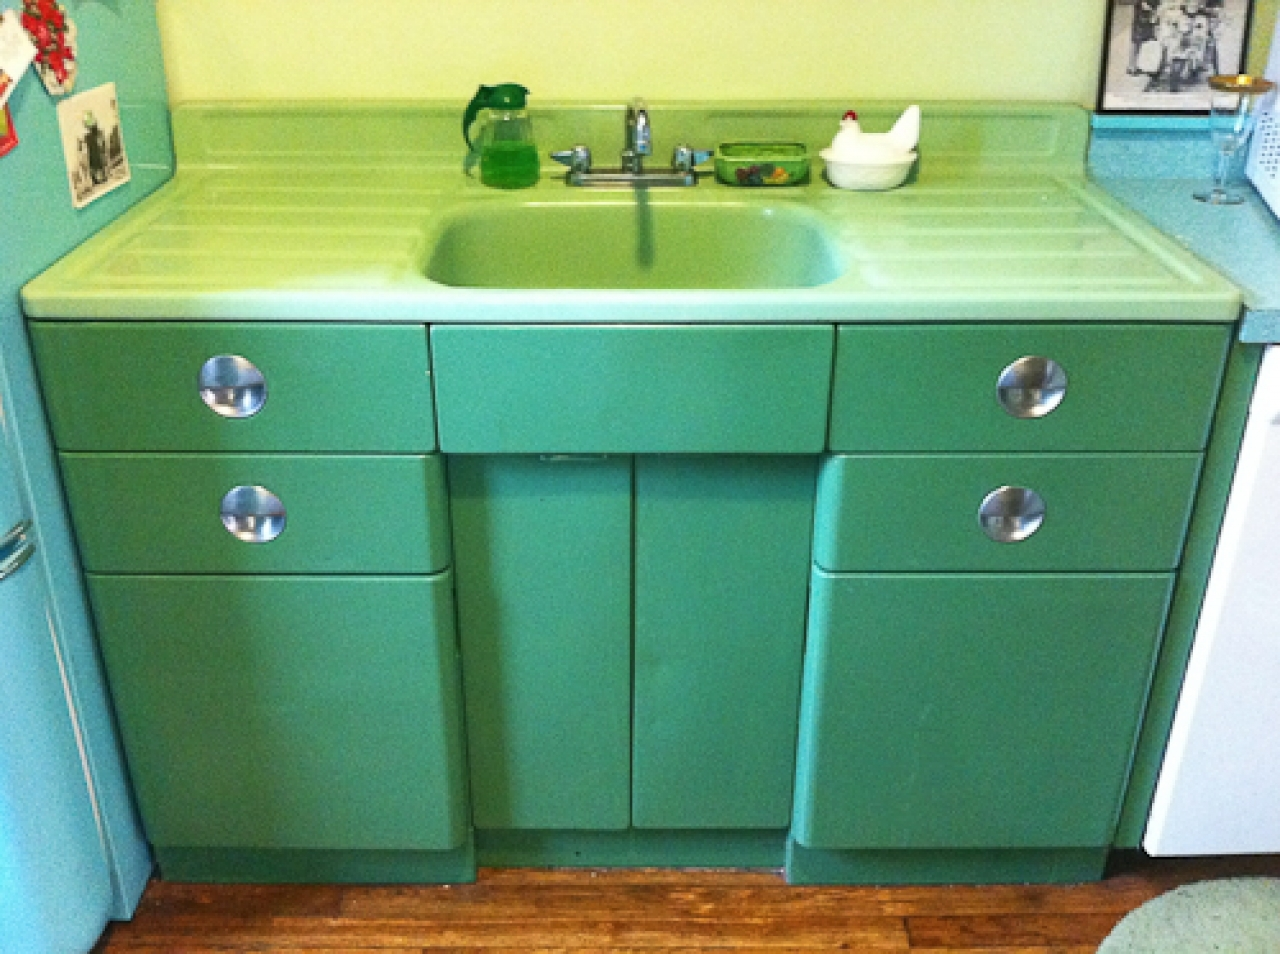 Vintage Metal Kitchen Cabinets With Sink